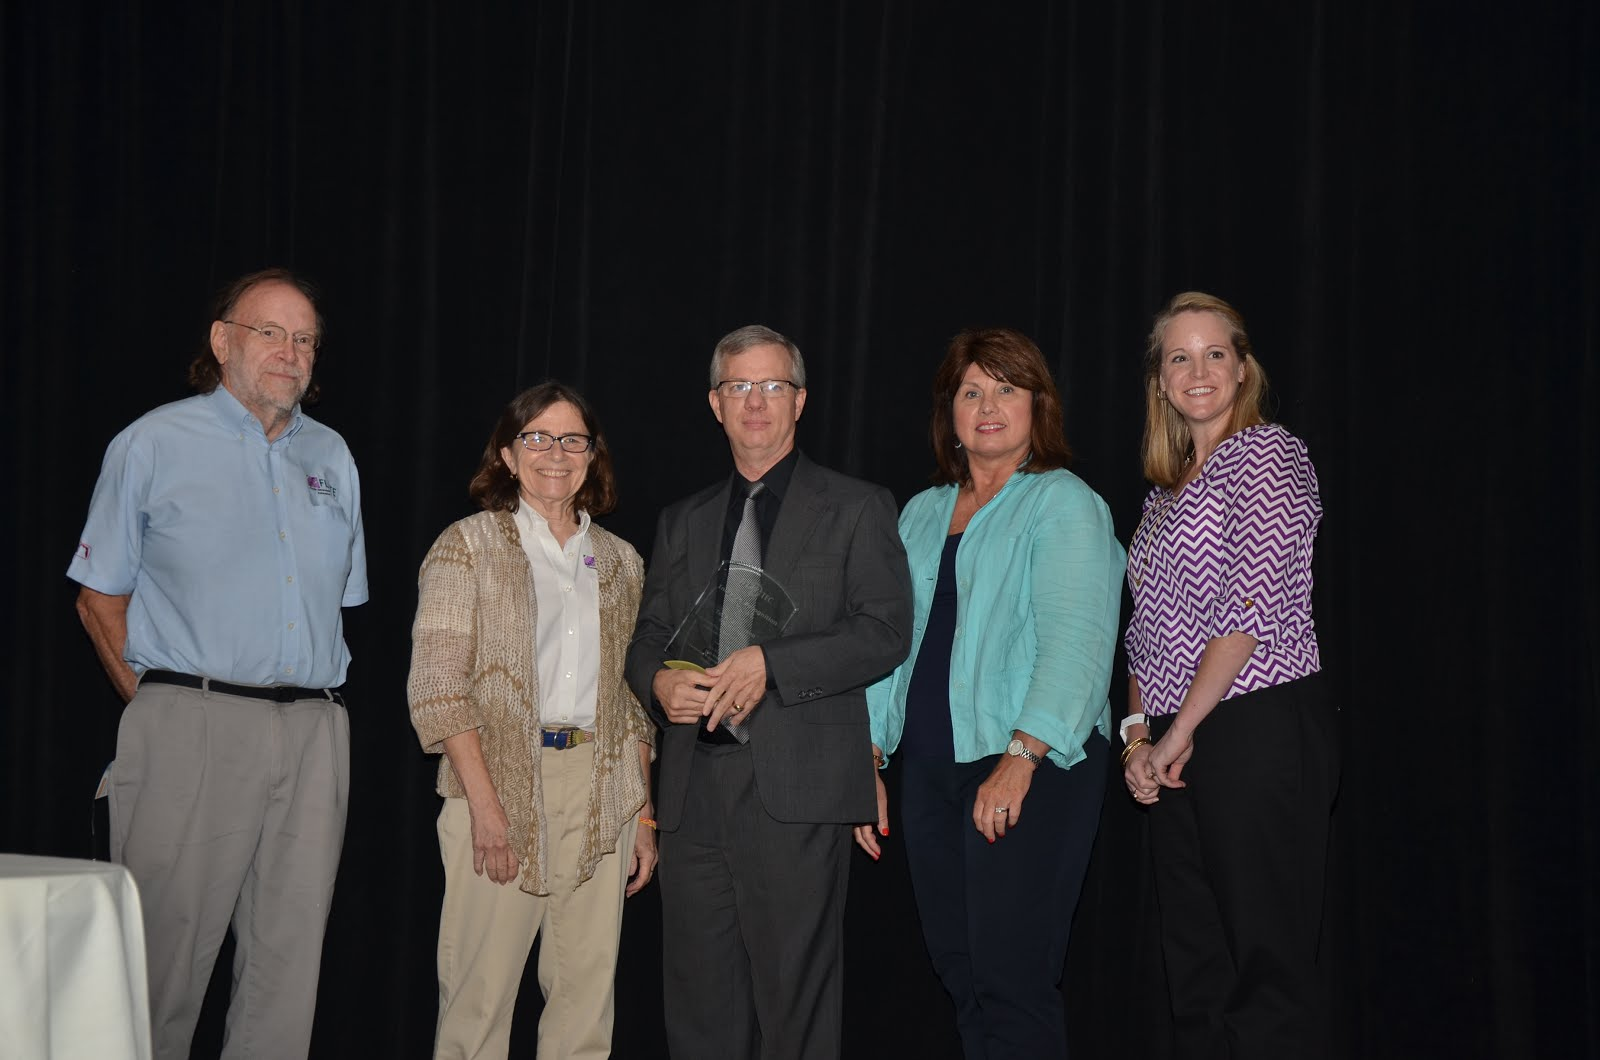 Congratulations to Terry Iverson for receiving the HI-TECH Industry Recognition Award